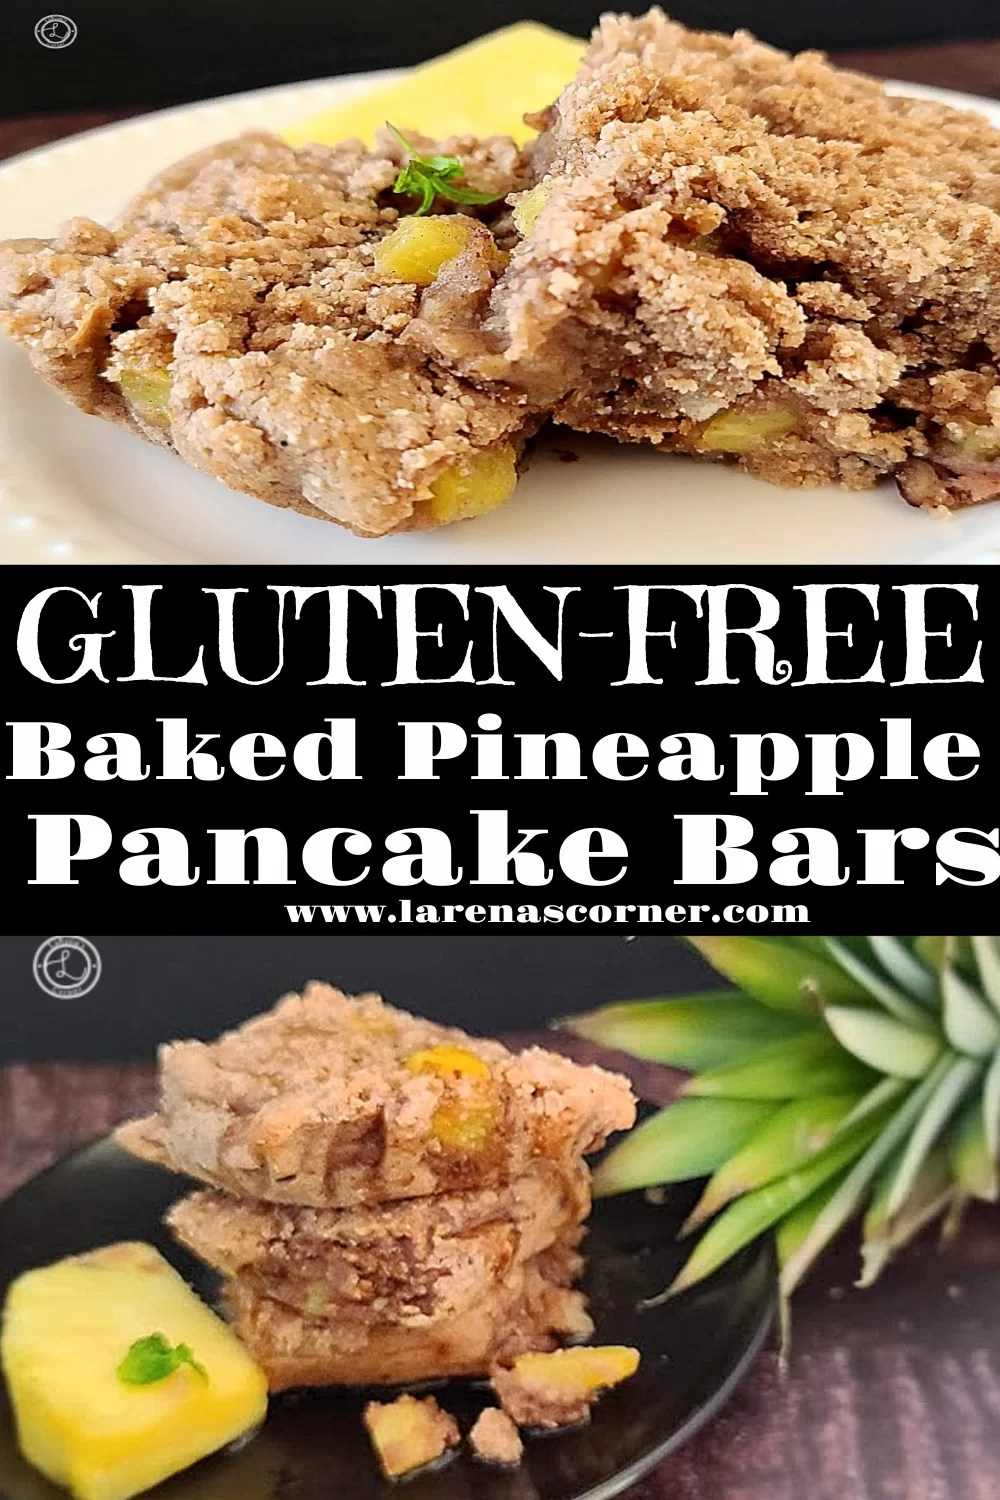 Two Pictures of Gluten-Free Pineapple Pancake Bars